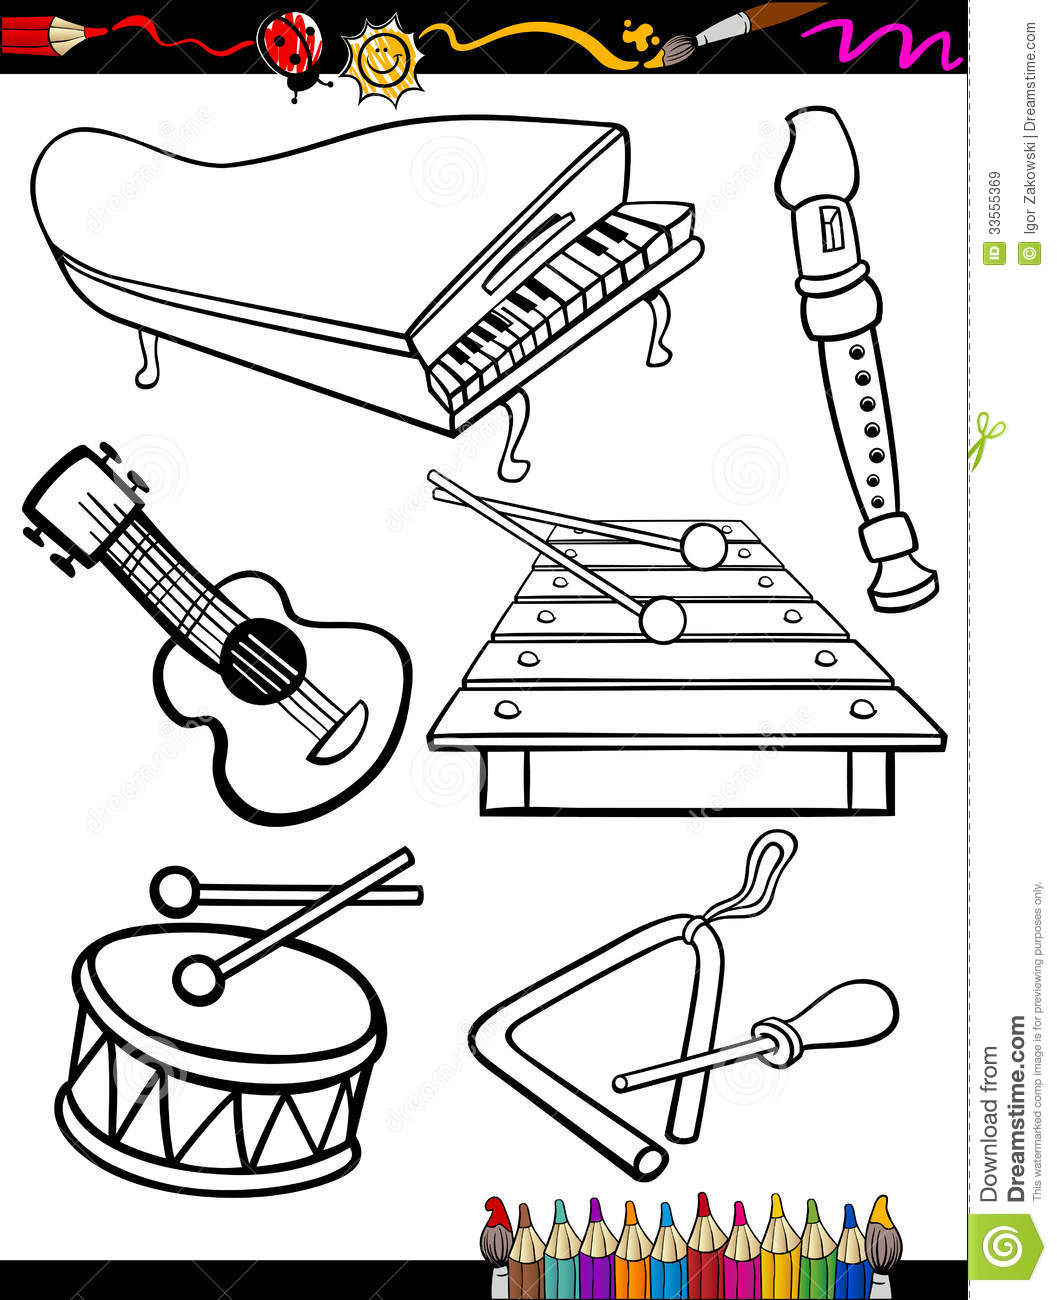 Cartoon Music Instruments Coloring Page Royalty Free Stock